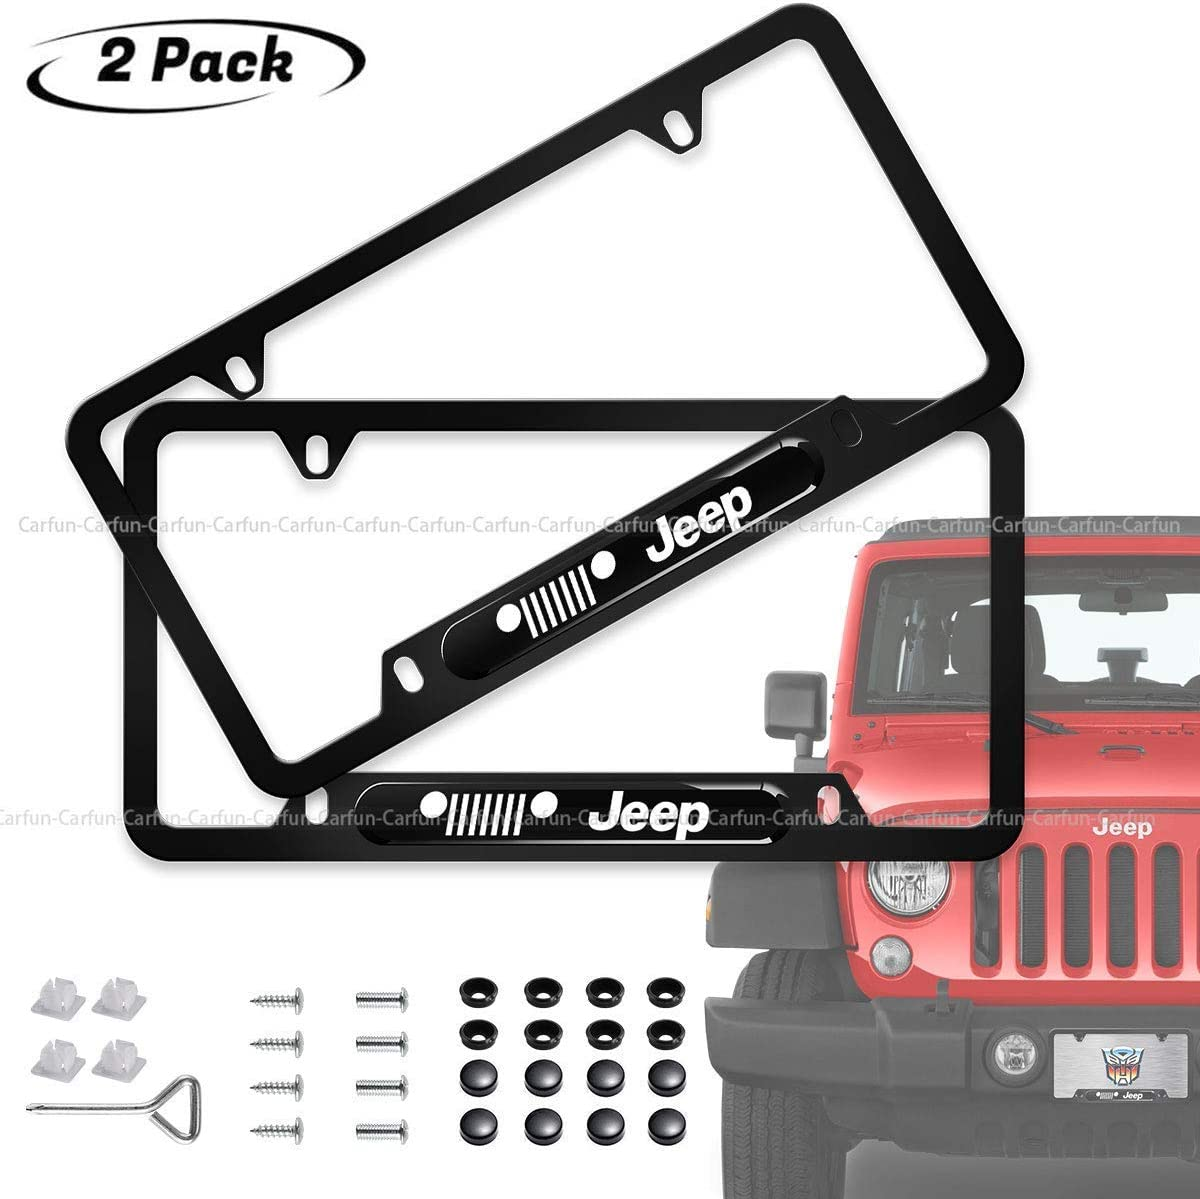 cargooghi 2pcs License Plate Frames with Screw Caps Set Stainless Steel Frame Applicable to US Standard Cars License Plate Fit Jaguar Accessory fit Jaguar